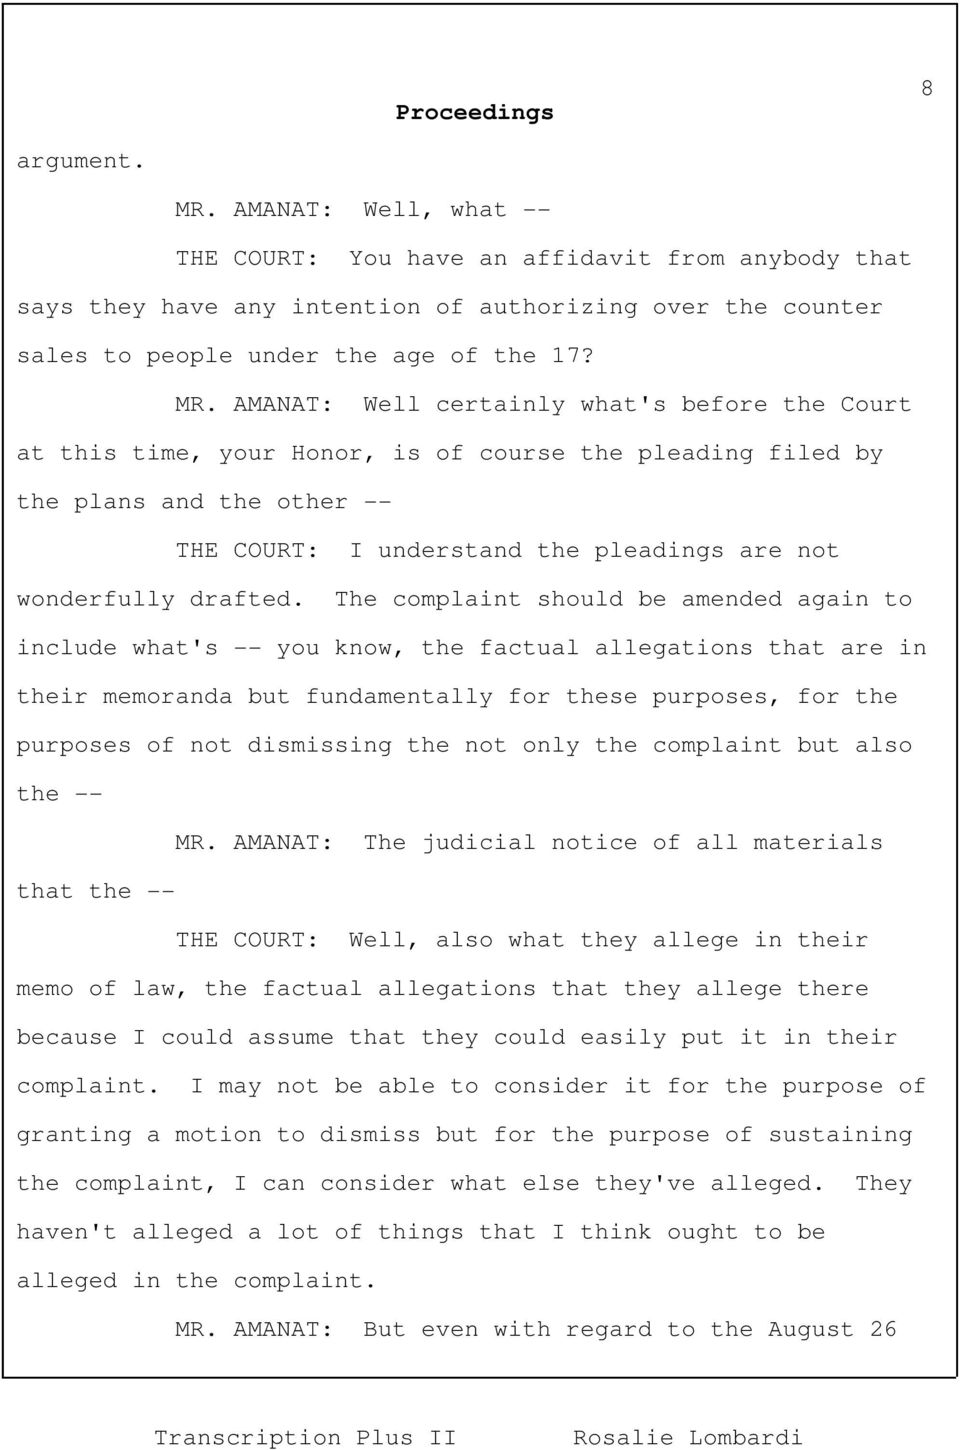 AMANAT: Well certainly what's before the Court at this time, your Honor, is of course the pleading filed by the plans and the other -- THE COURT: I understand the pleadings are not wonderfully